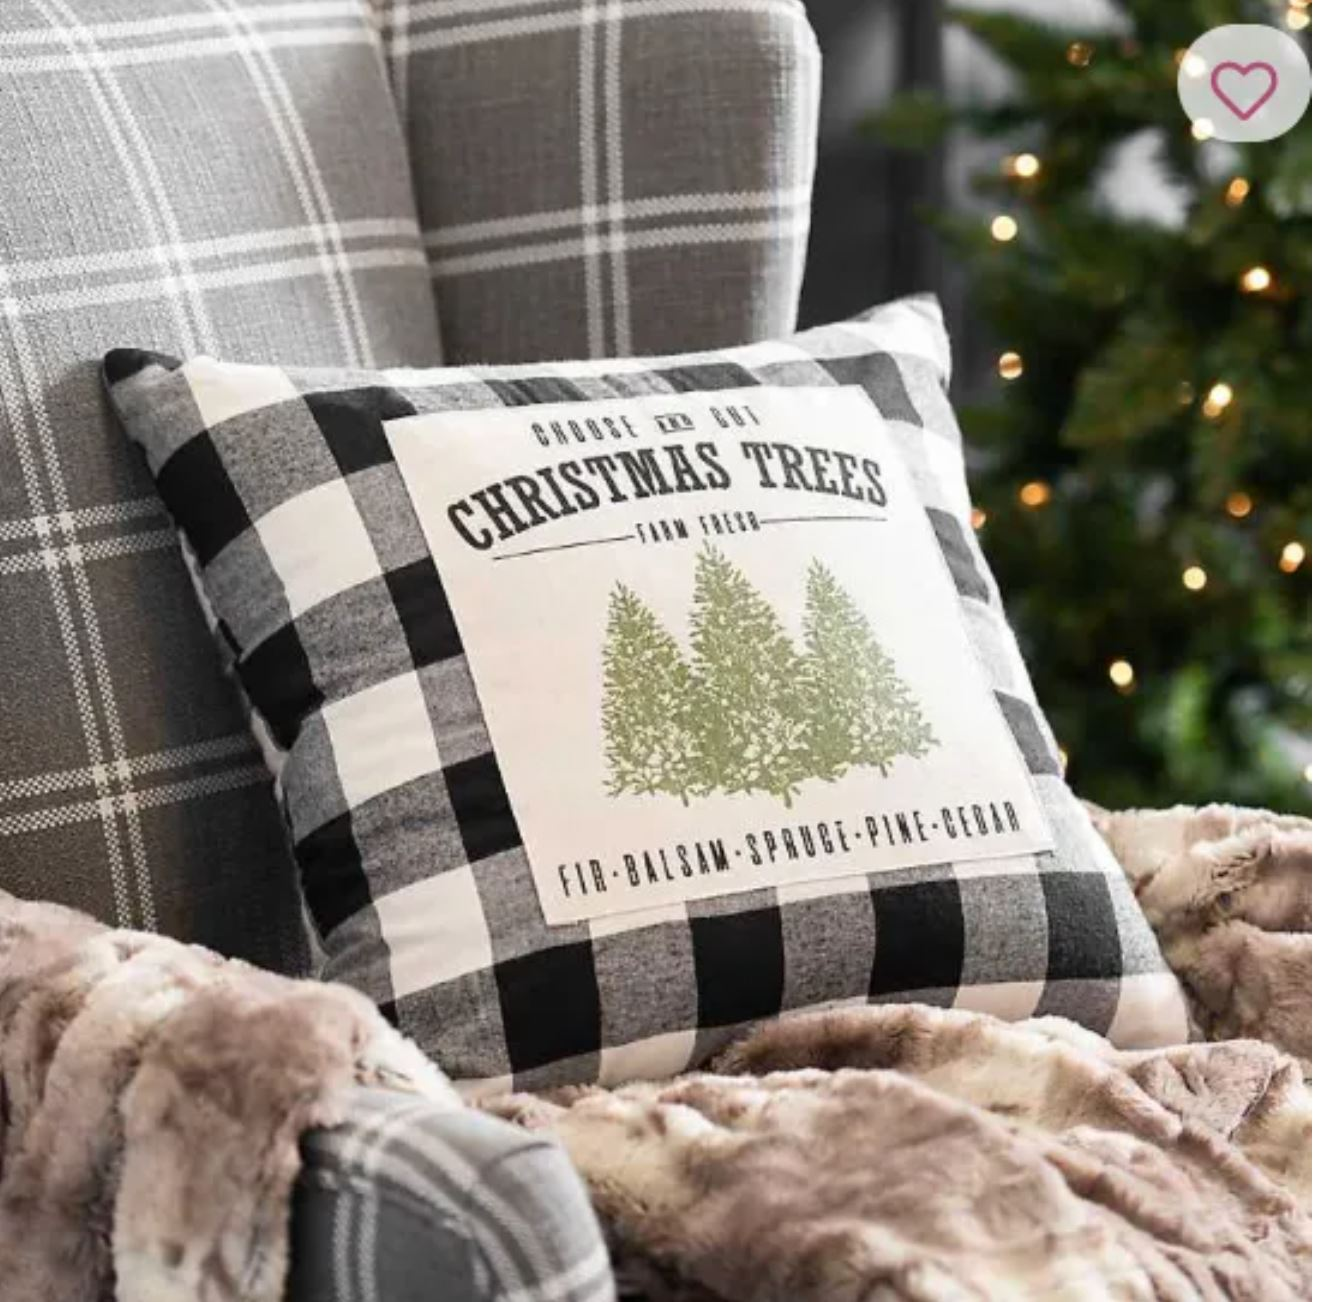 Realtor Magazine 2020 12 14 - 2 of 5 decorating trends this Christmas since the begining of the plandemic after going through the COVID-19 Coronavirus pandemic Hoey Team exp Realty